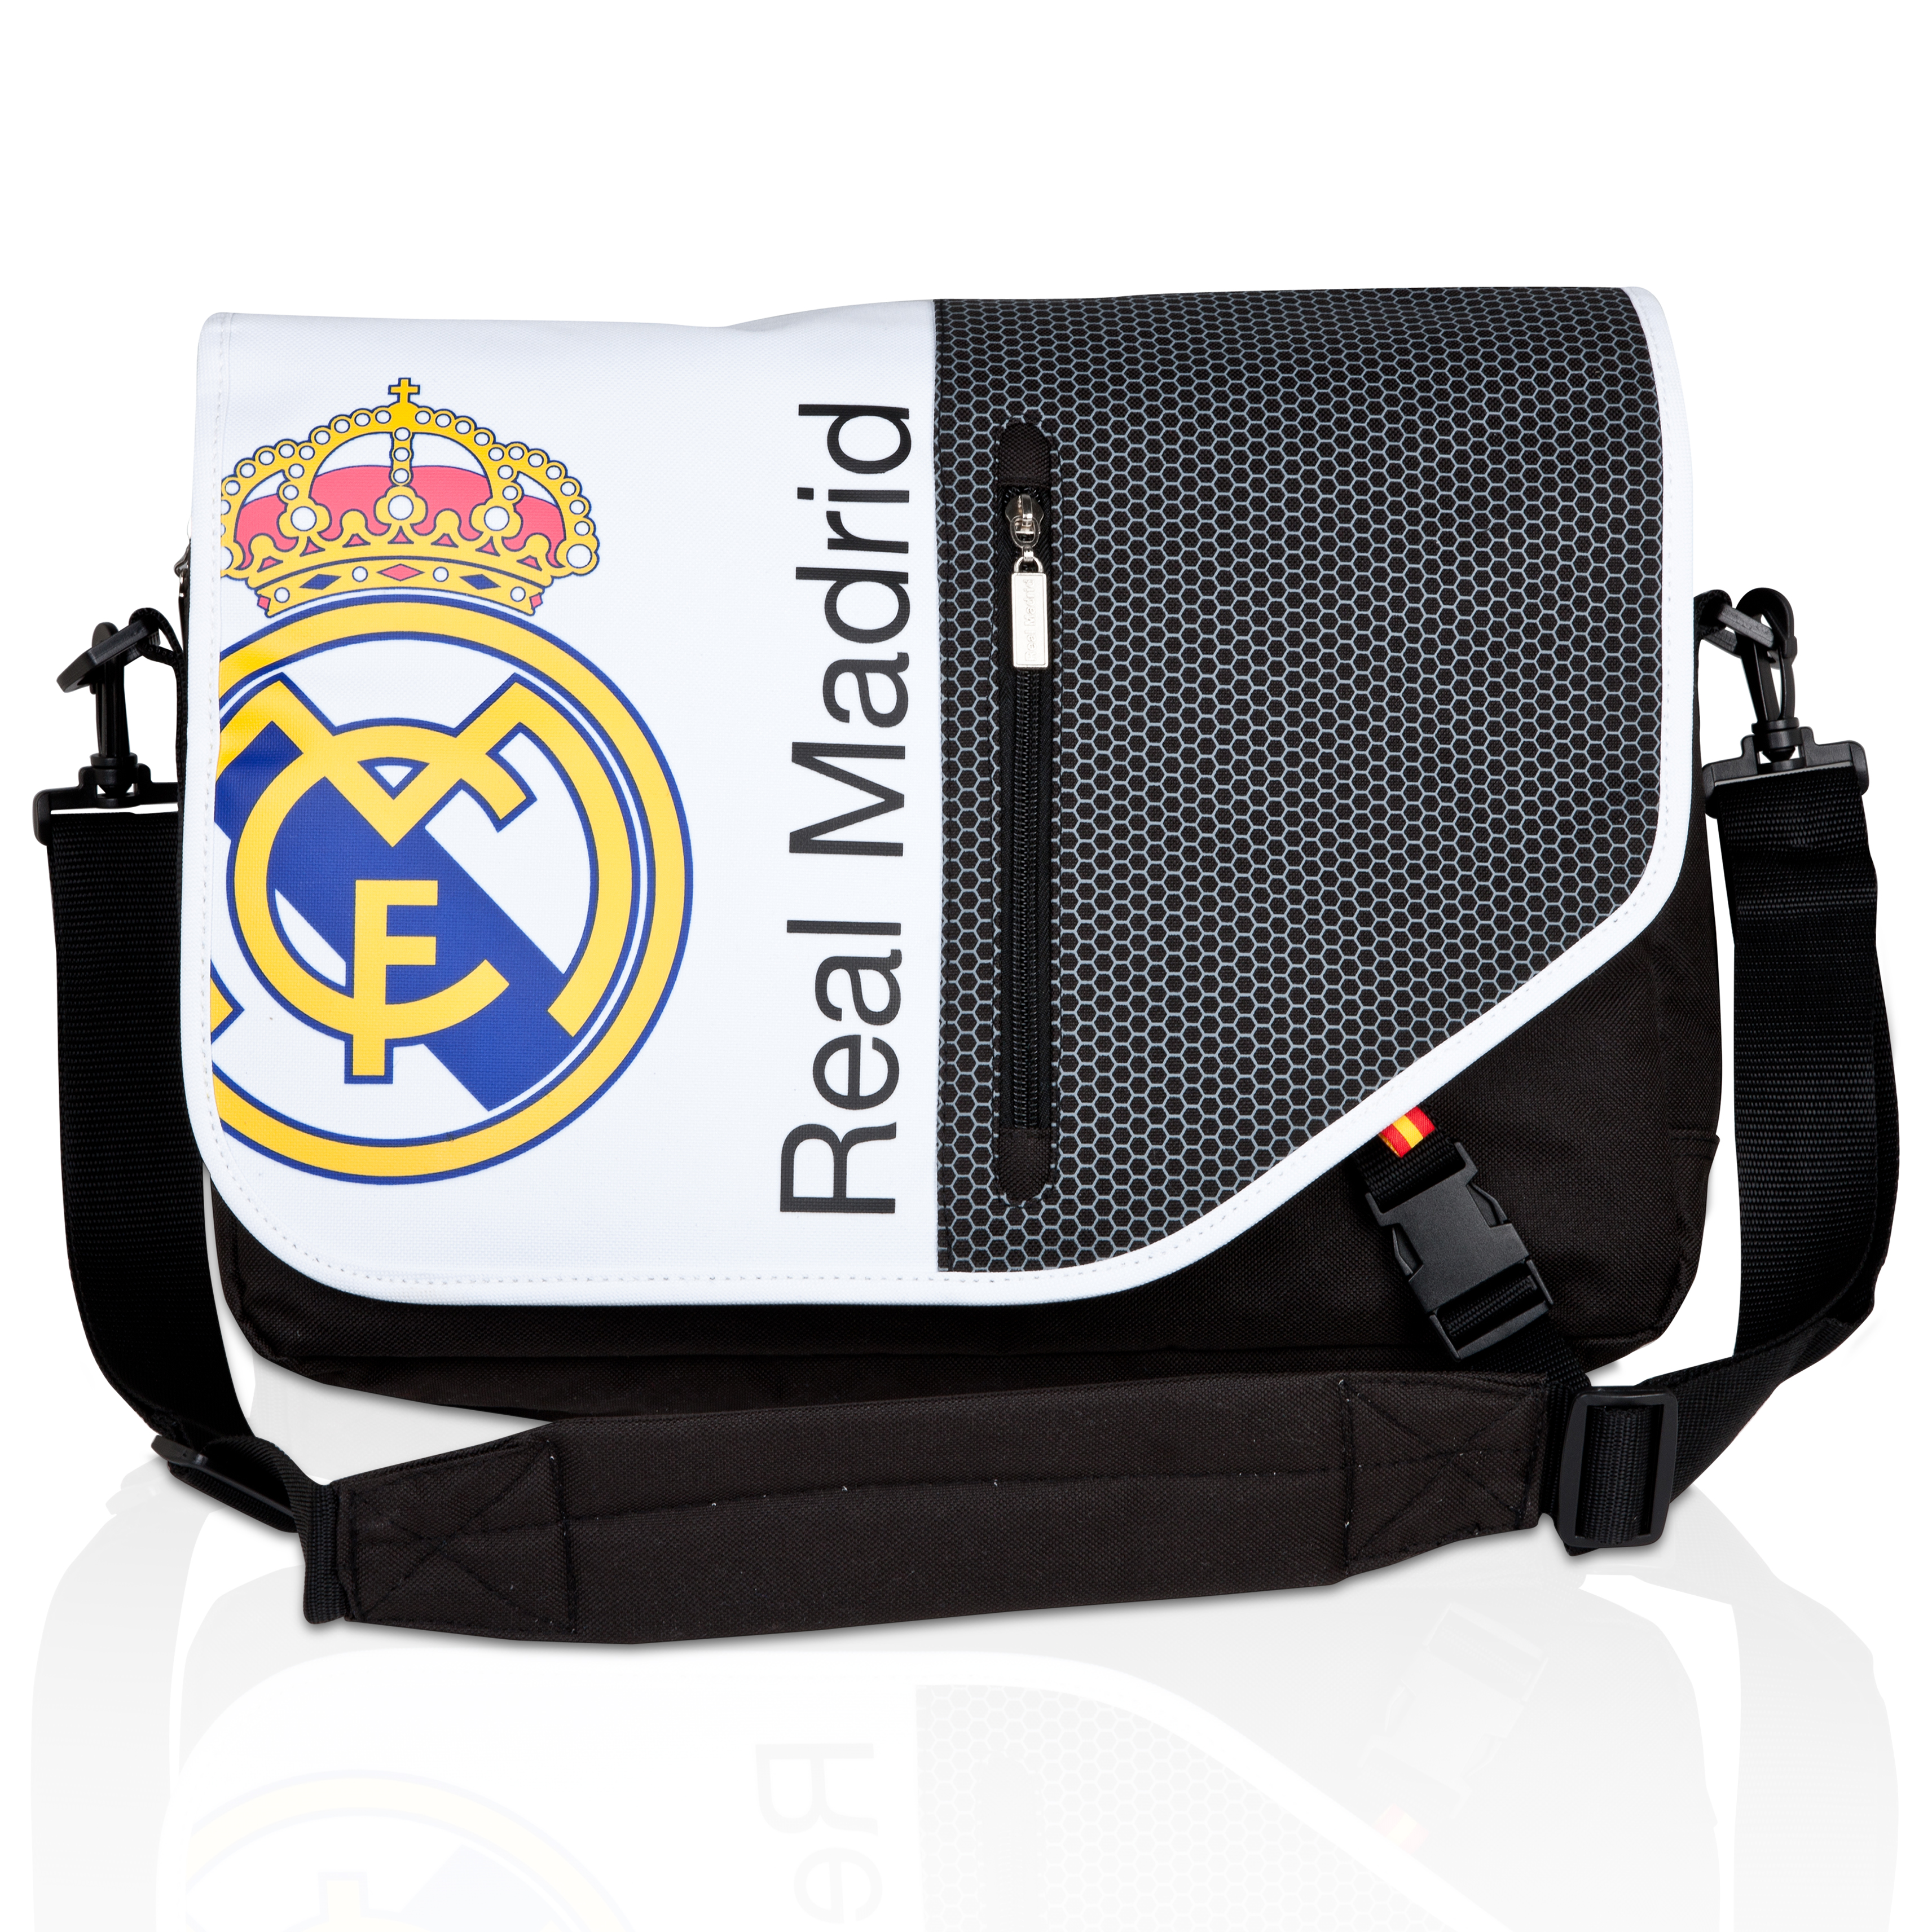 Real Madrid Shoulder Laptop Bag Cover - 15.6inches